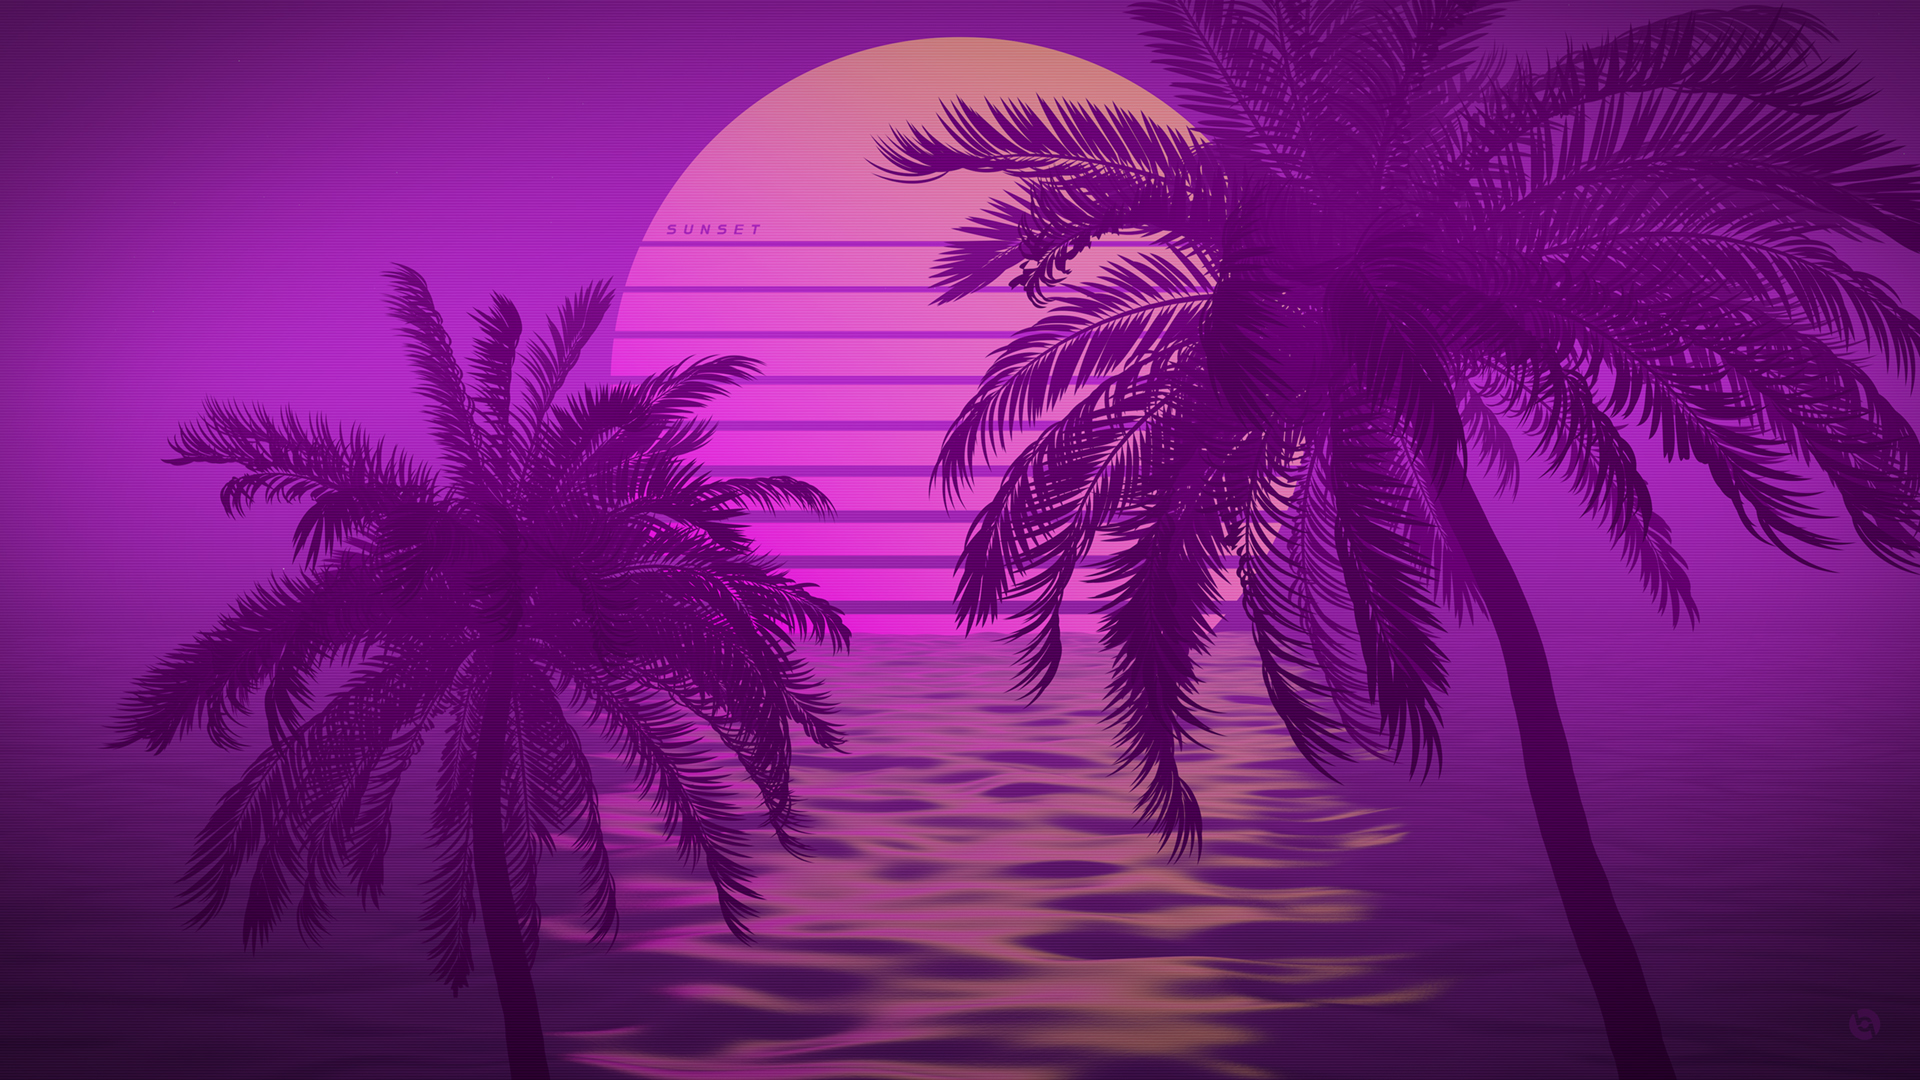 Sunset 80s Aesthetic By Ubenny On Deviantart Free music streaming for any time, place, or mood. sunset 80s aesthetic by ubenny on